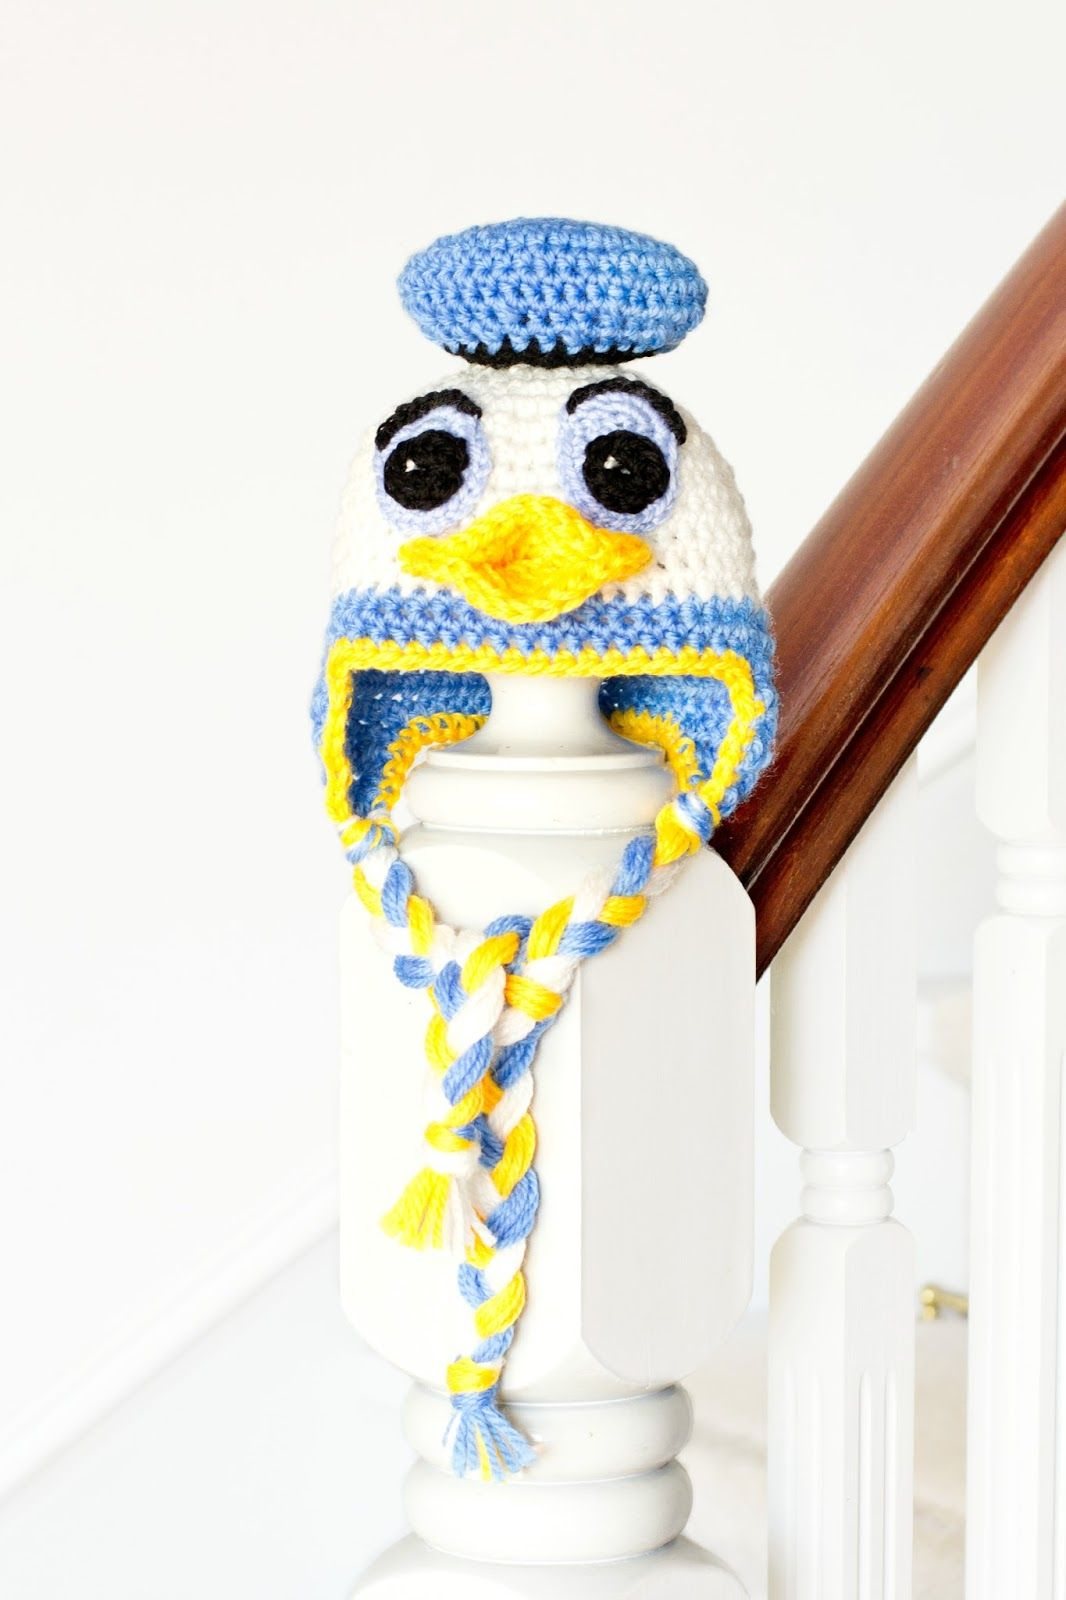 Donald Duck Inspired Baby Hat Crochet Pattern | Hopeful honey, Baby ...